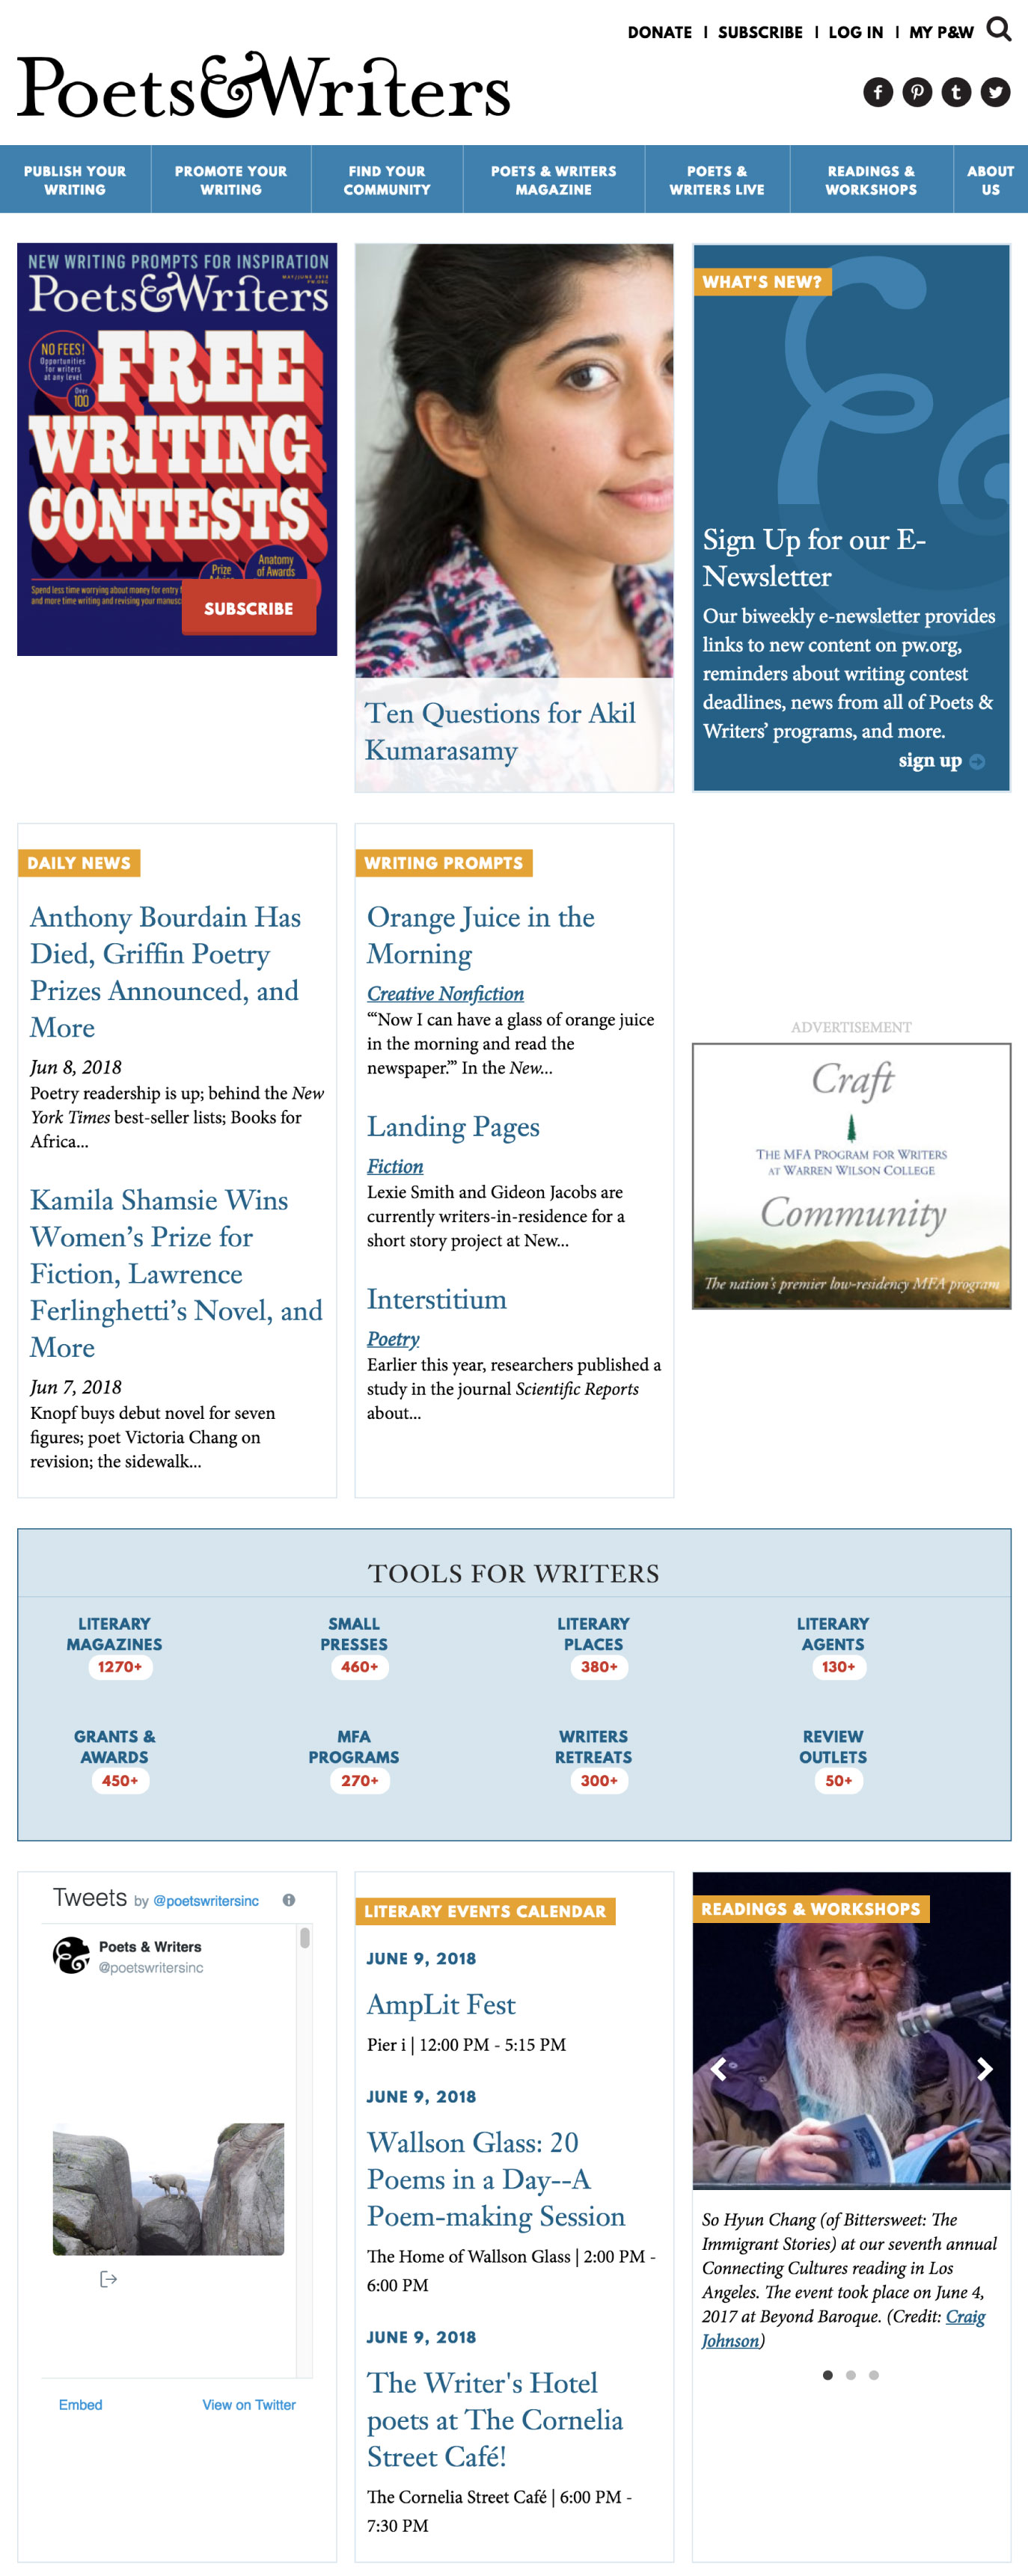 poets and writers homepage